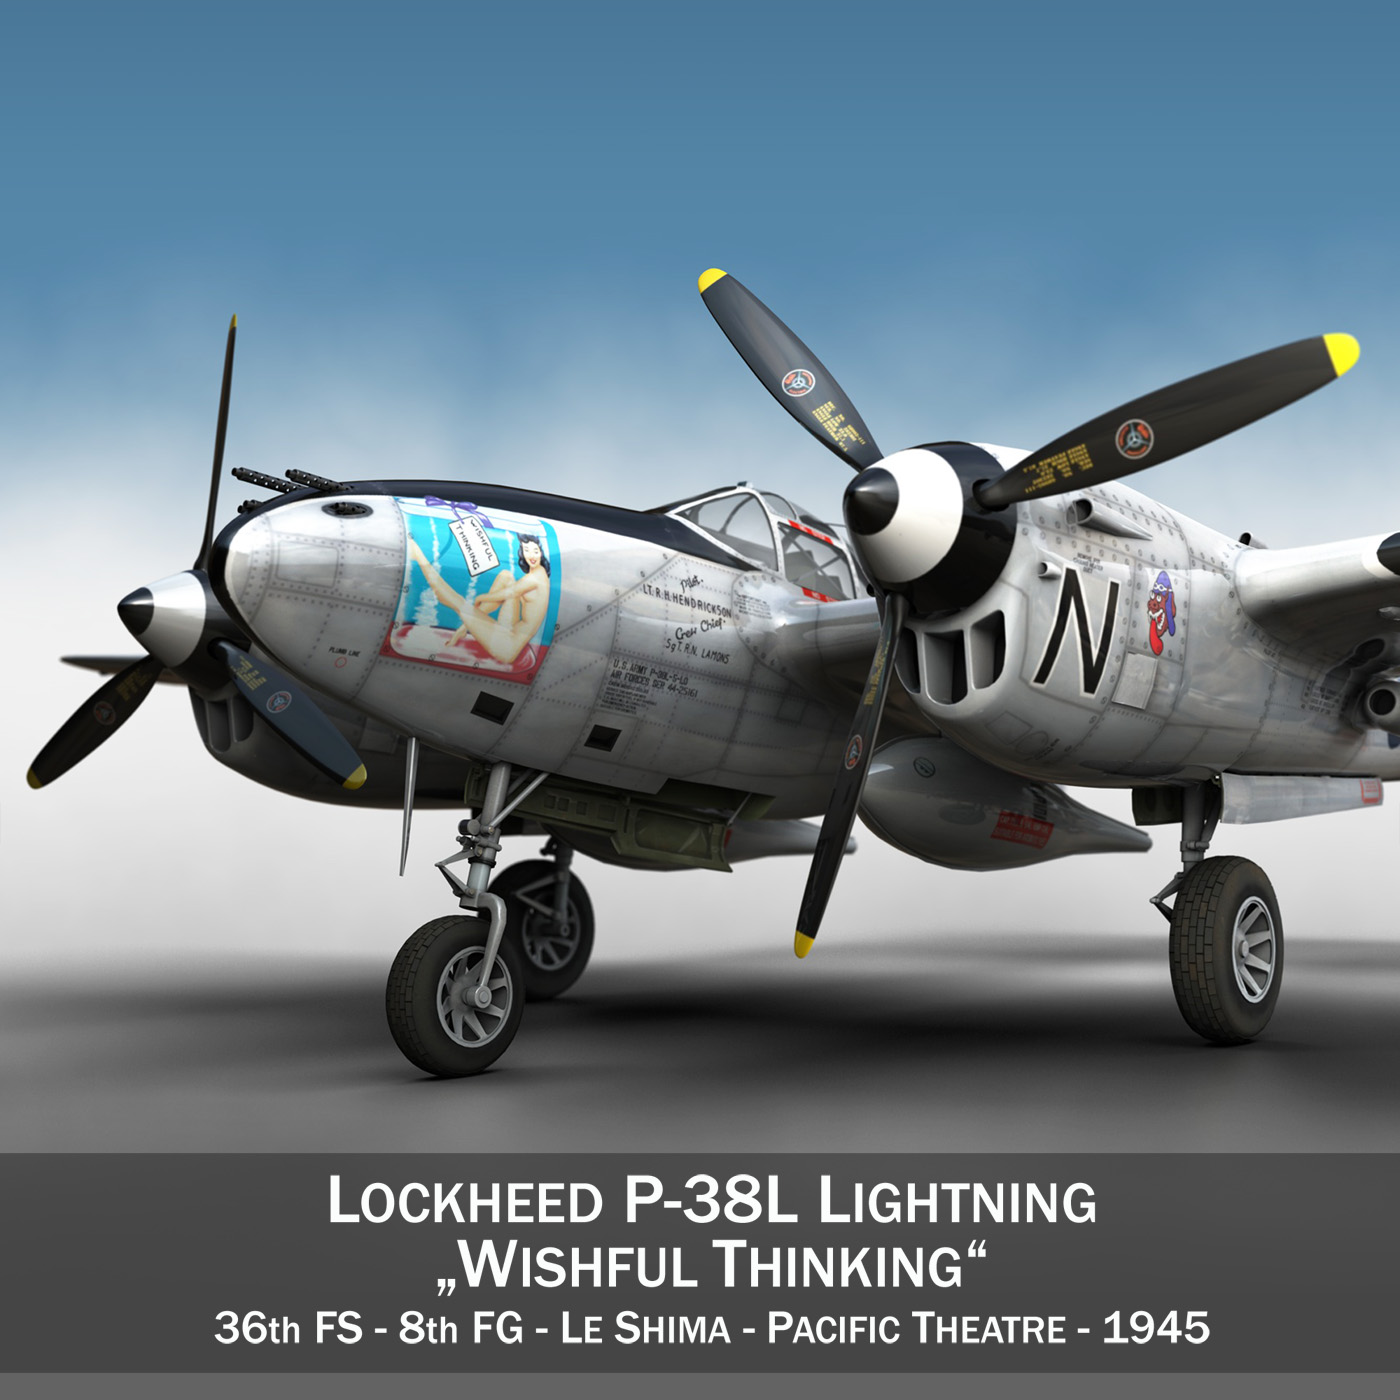 lockheed p-38 lightning – wishful thinking 3d model fbx c4d lwo obj 252244